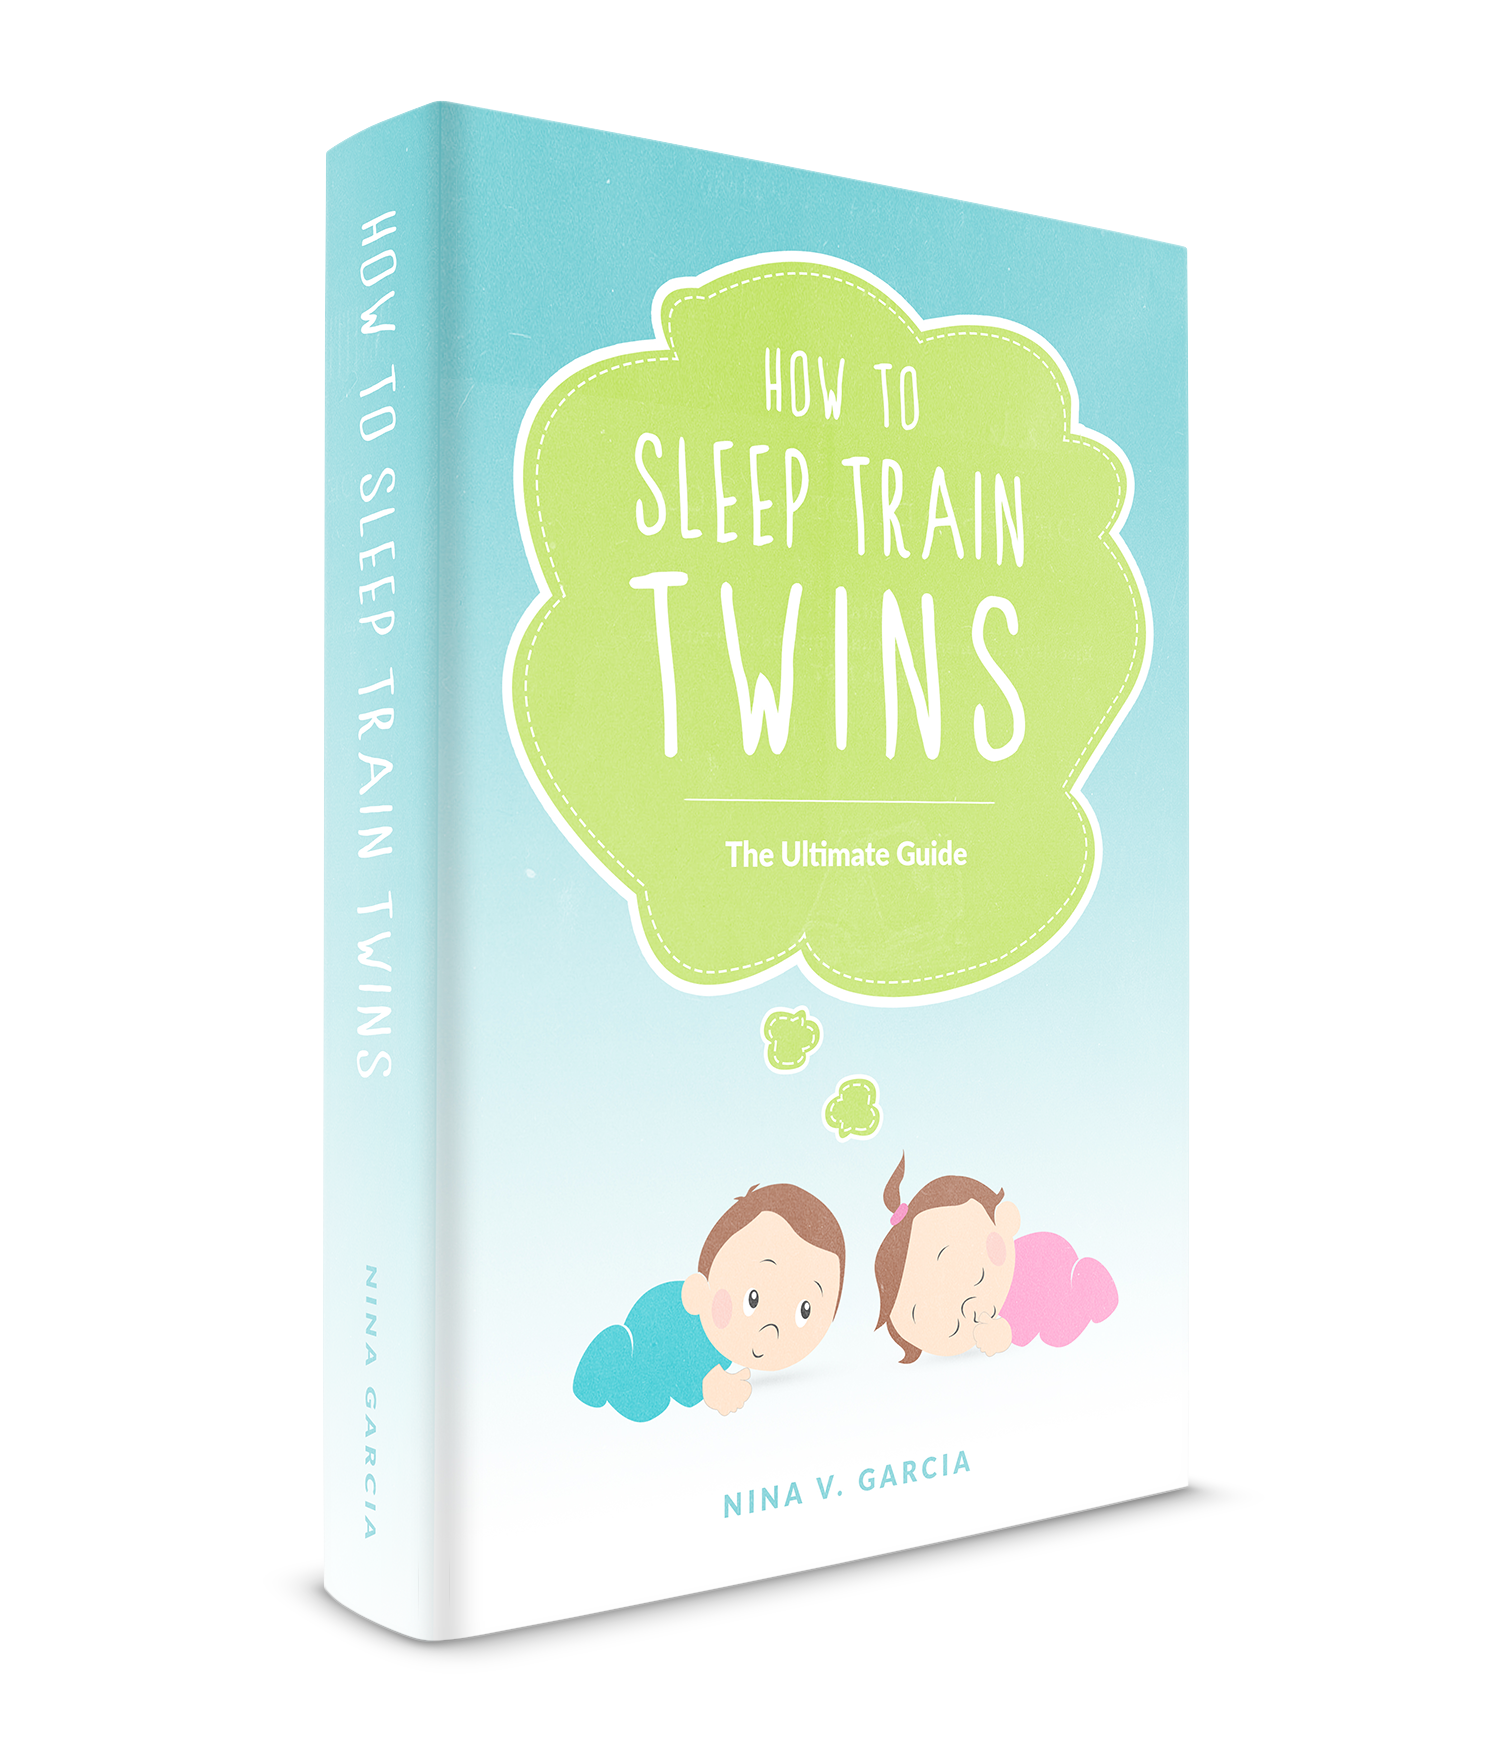 Do your twins wake up multiple times a night? Learn how to sleep train twins to sleep through the night and wean from night feedings.